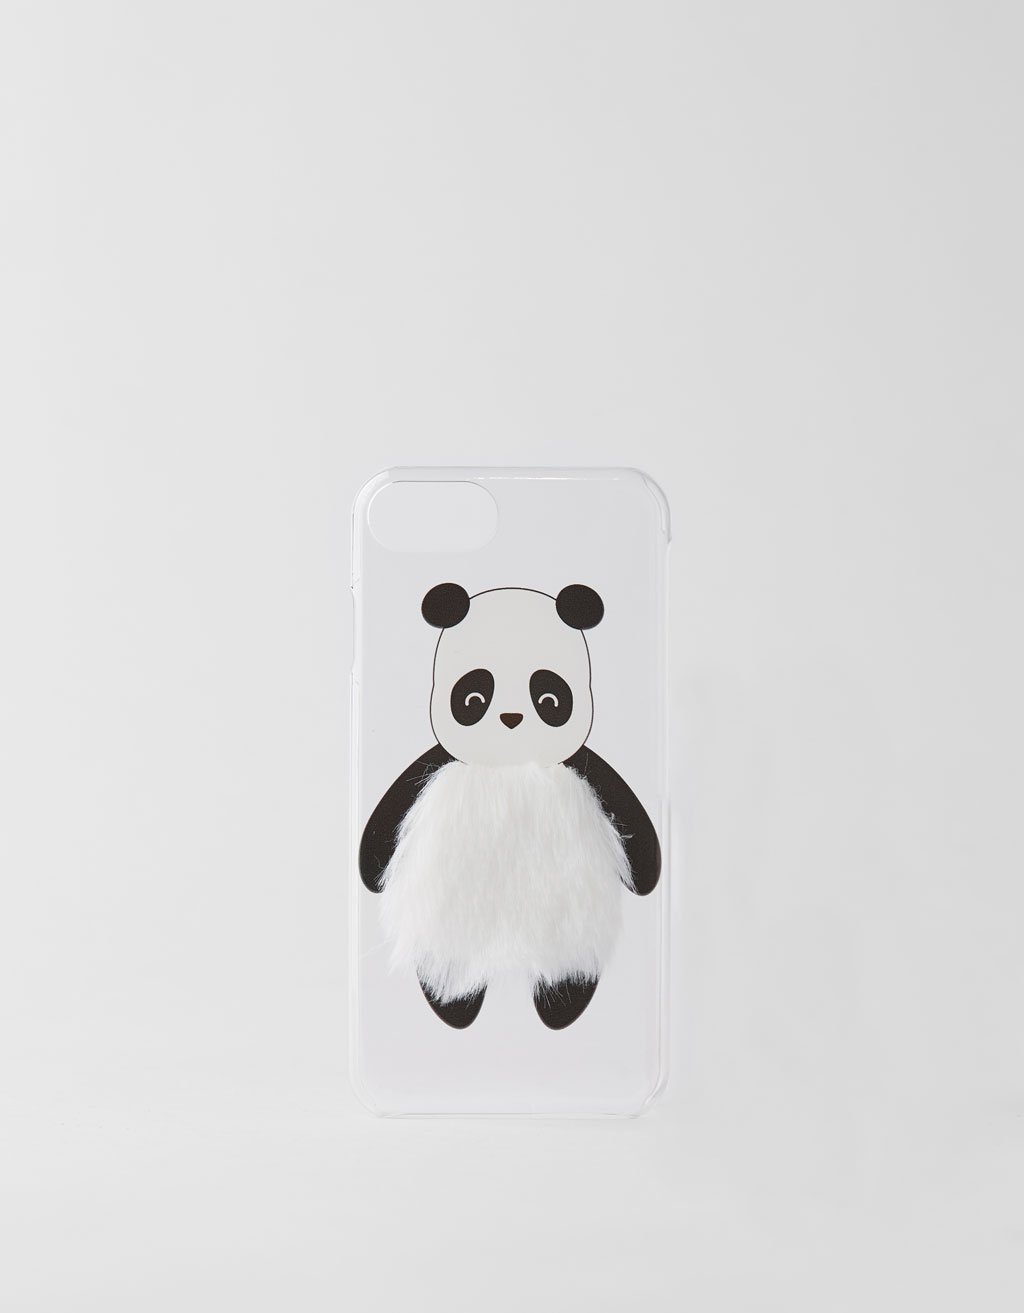 Capa Panda iPhone 6 / 6S / 7 / 8